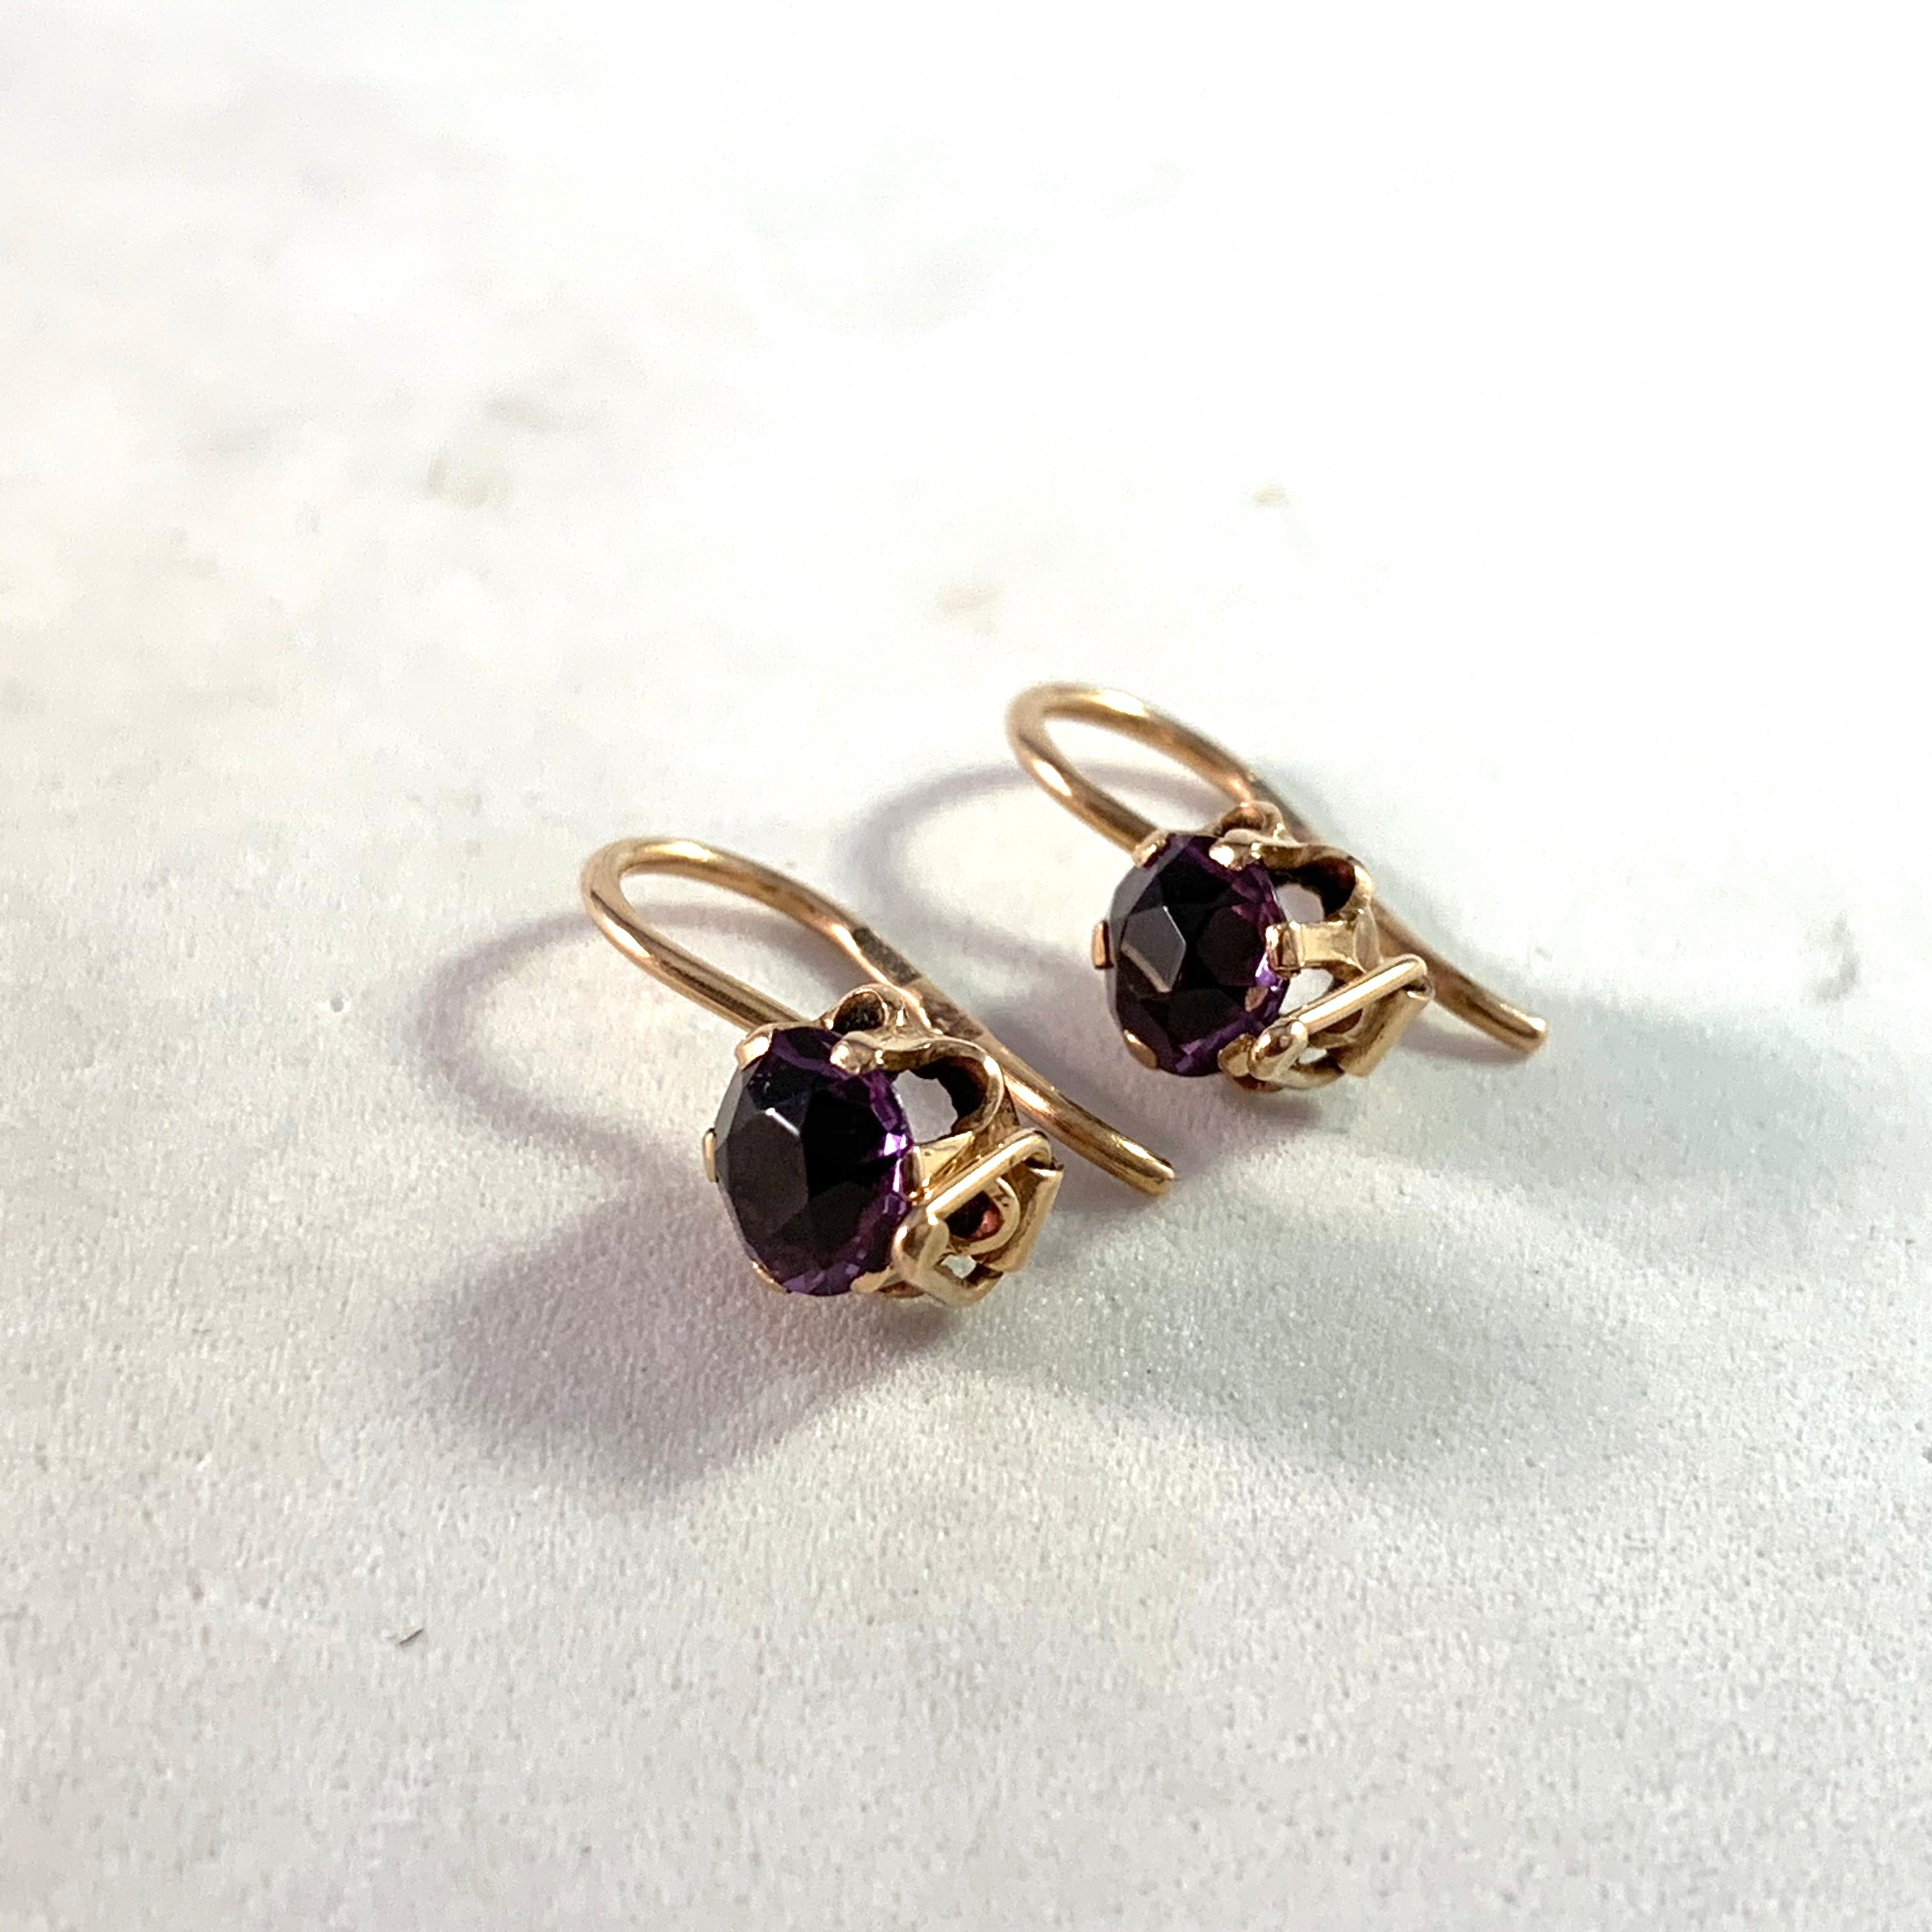 Russia, Soviet Era c 1950s. Mid Century 14k Gold Color Changing Sapphire Earrings.